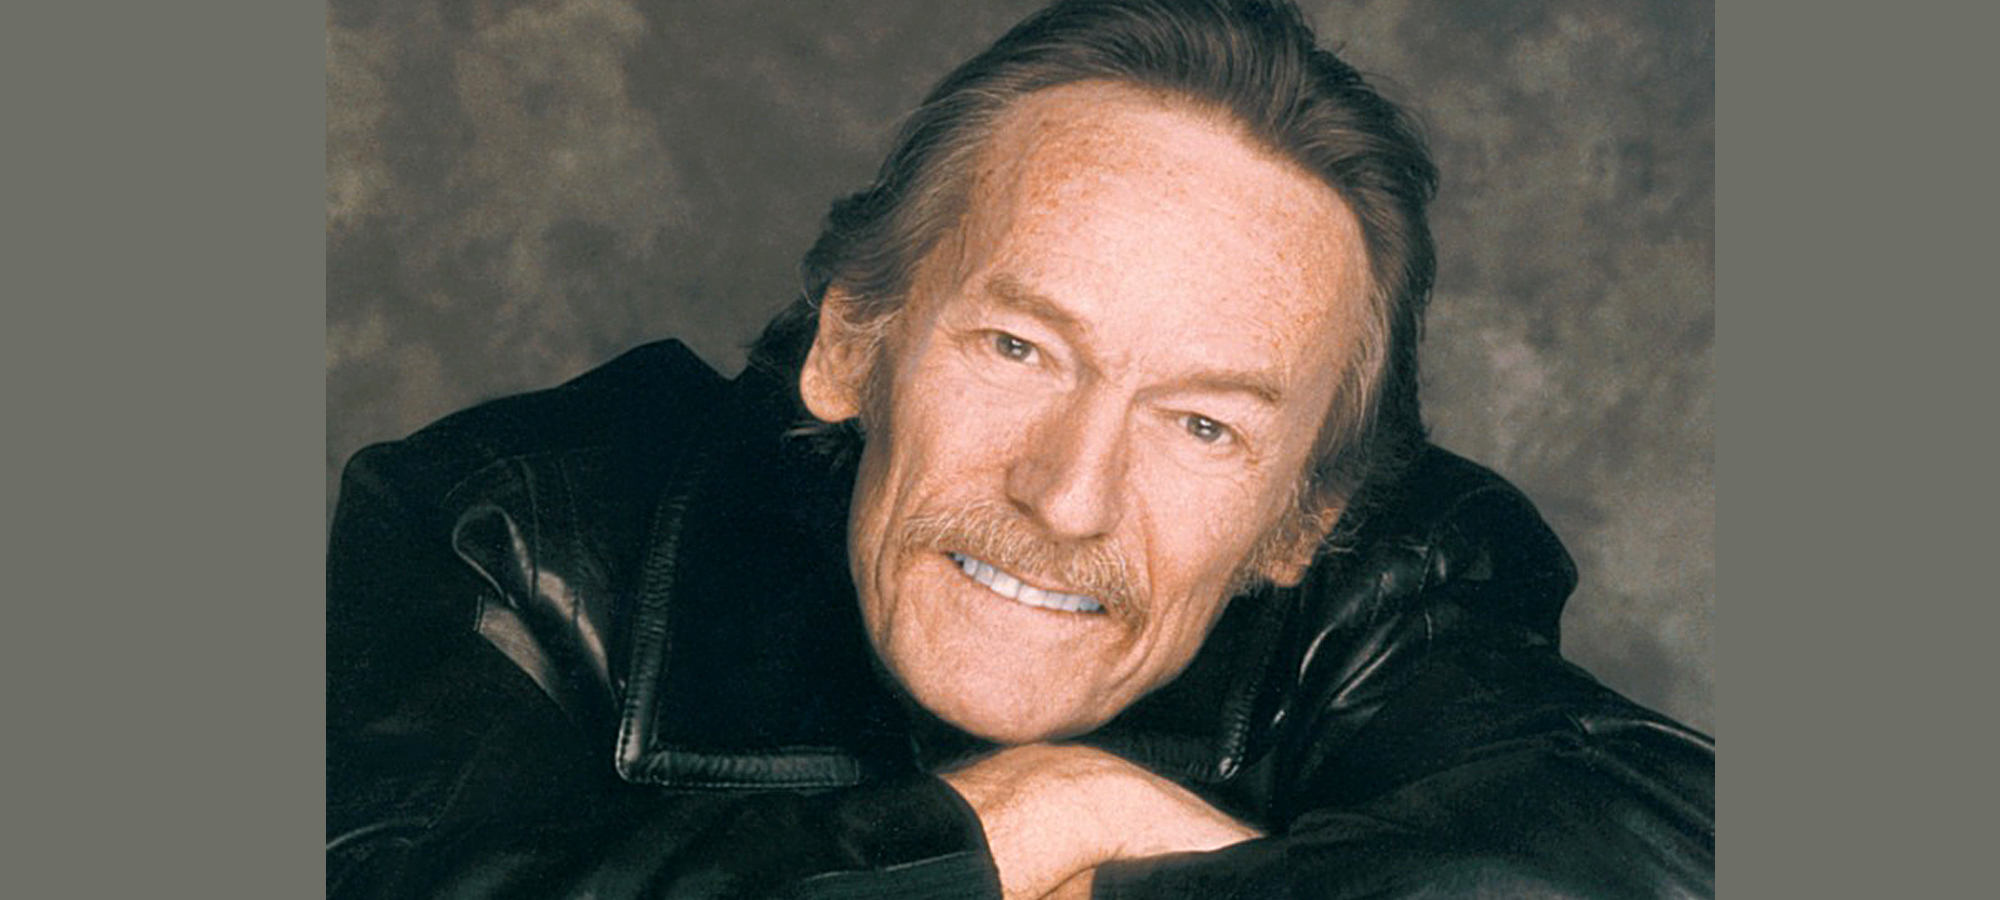 Gordon Lightfoot. HipQuotient.com